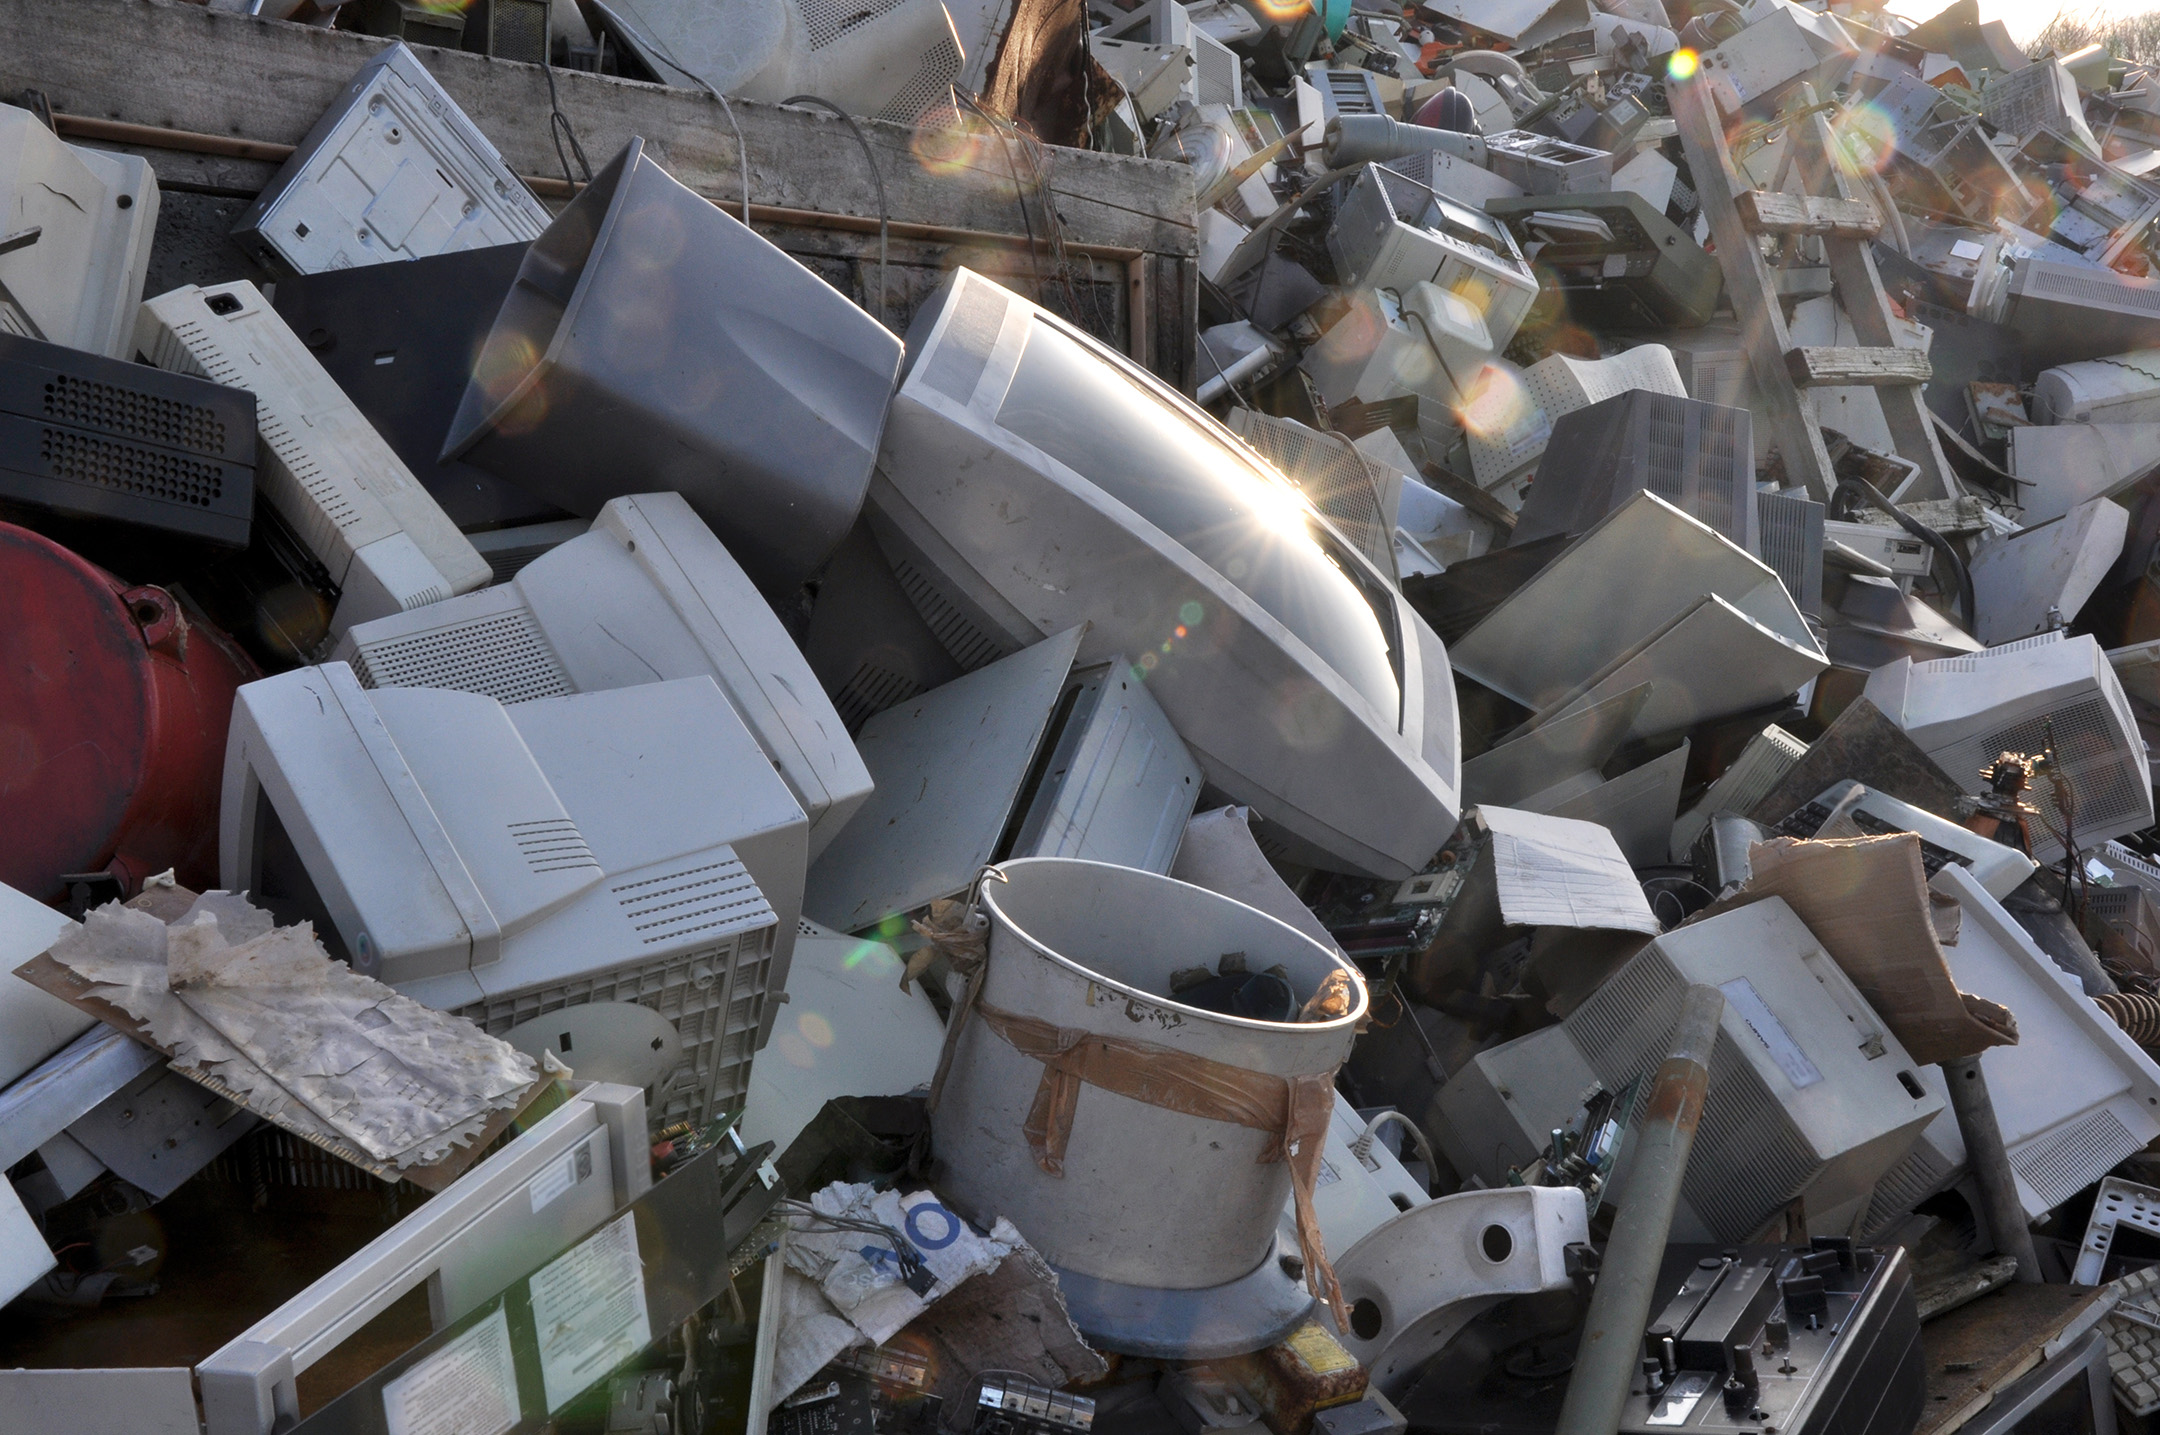 Televisions in a waste pile